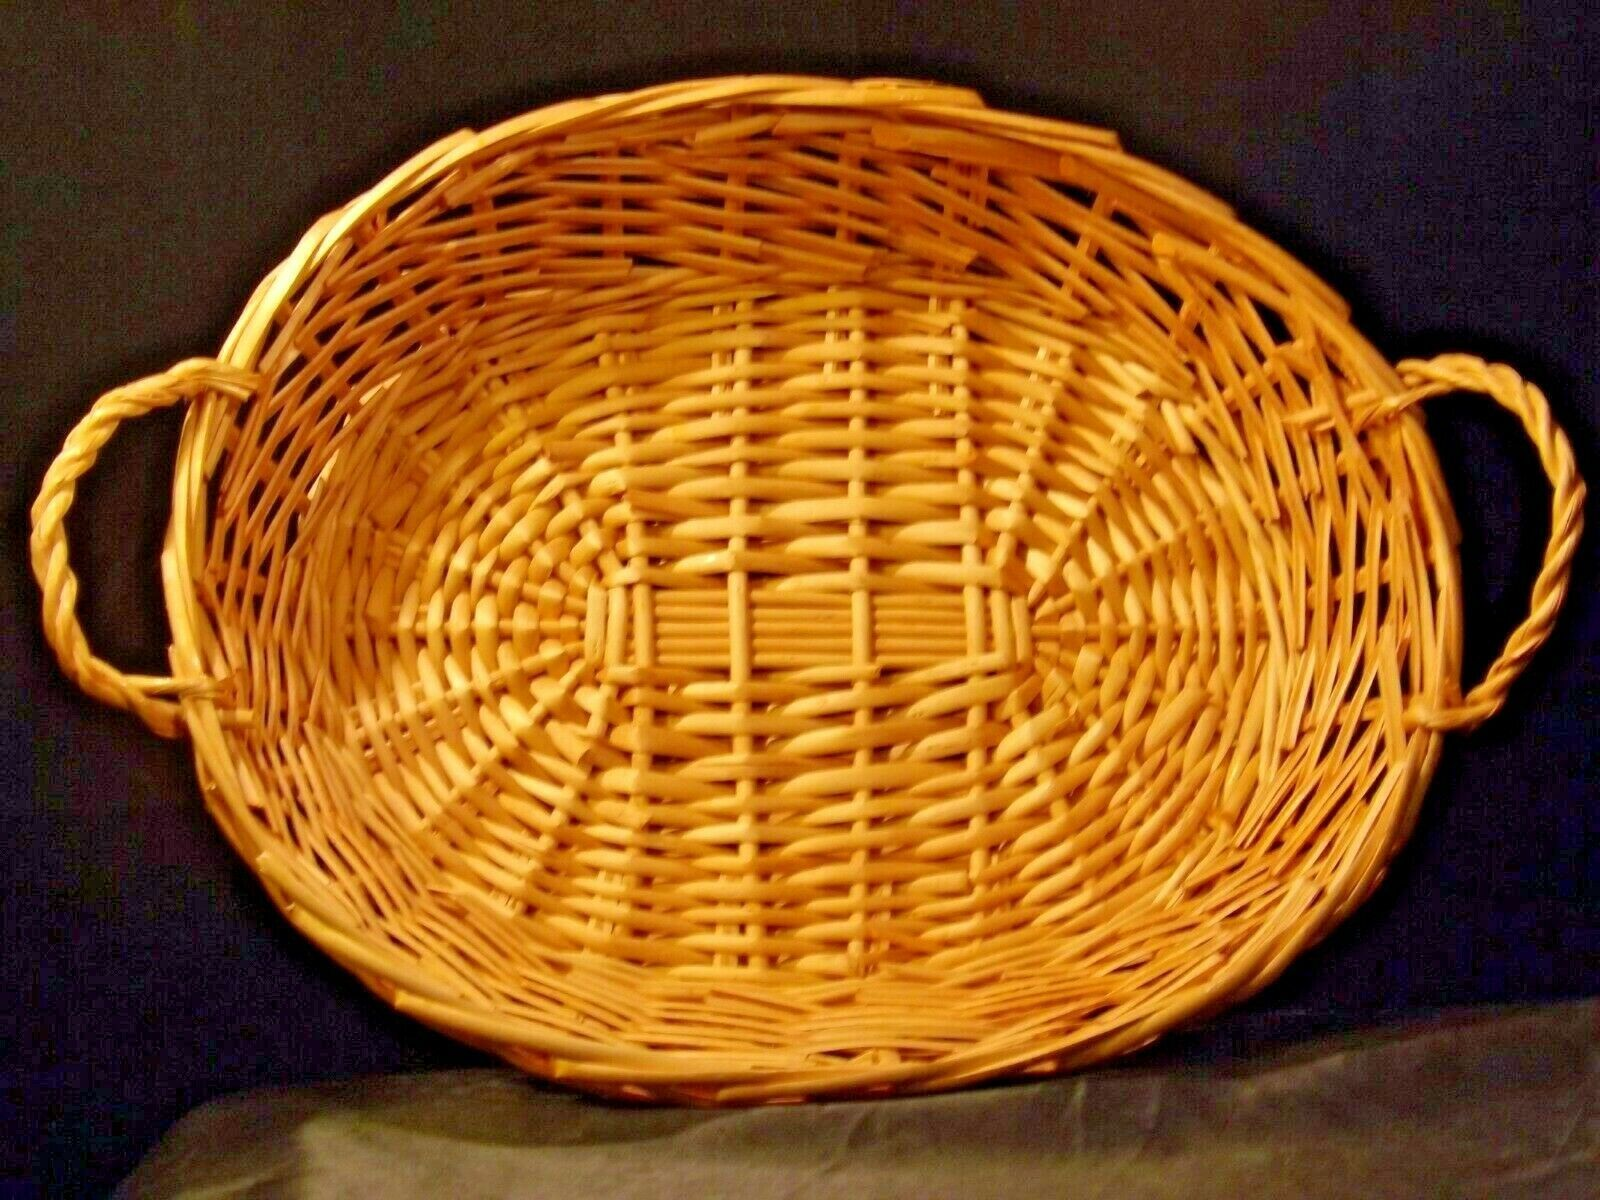 Handmade Woven Wicker Basket with Double Handles AA-191712 Vintage Collectible